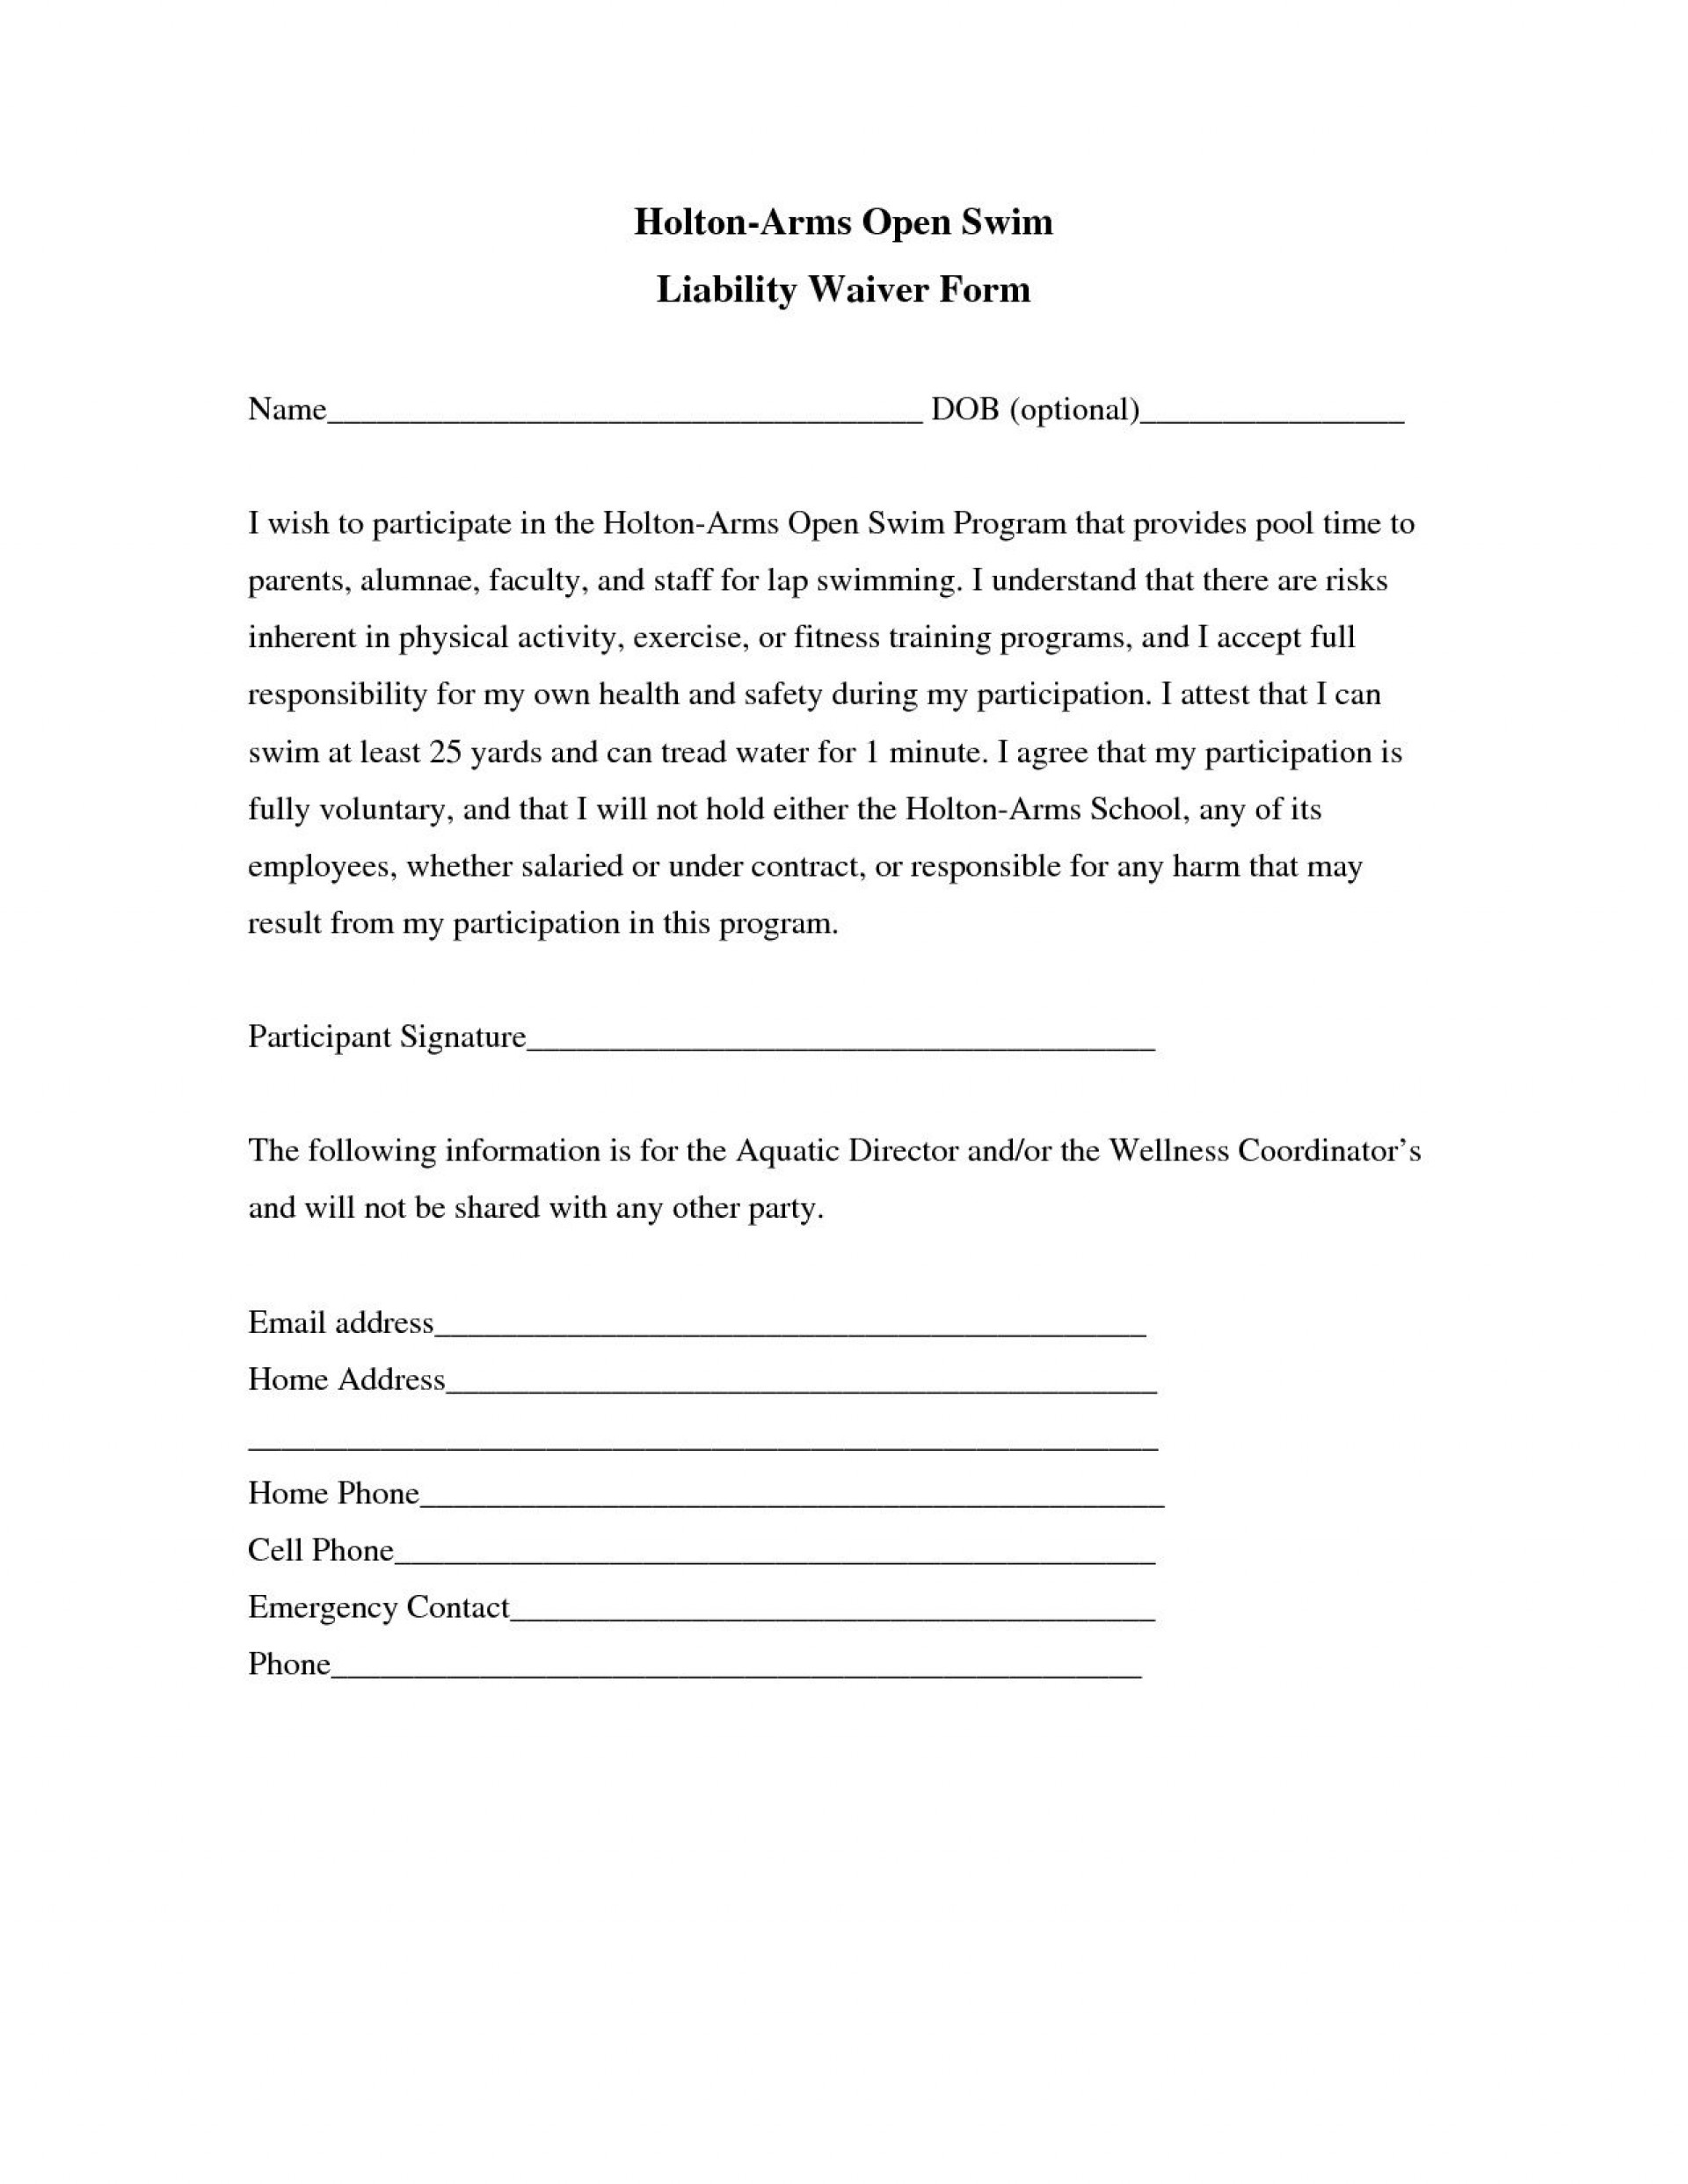 002 Awesome Liability Release Form Template Picture  General Waiver Church Free1920